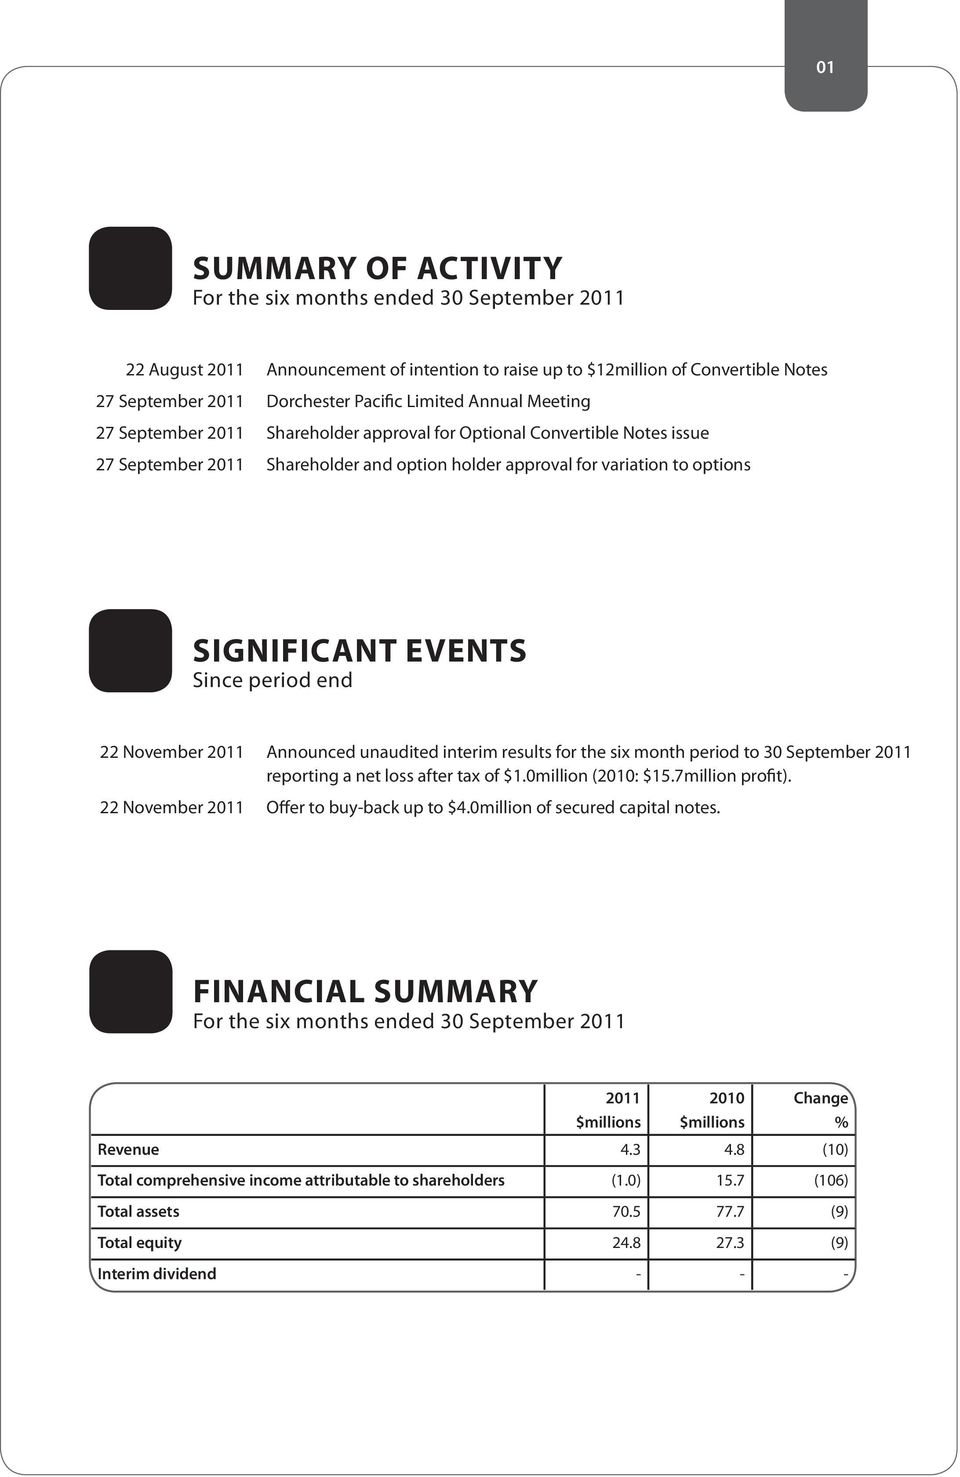 Announced unaudited interim results for the six month period to 30 September 2011 reporting a net loss after tax of $1.0million (2010: $15.7million profit). Offer to buy-back up to $4.